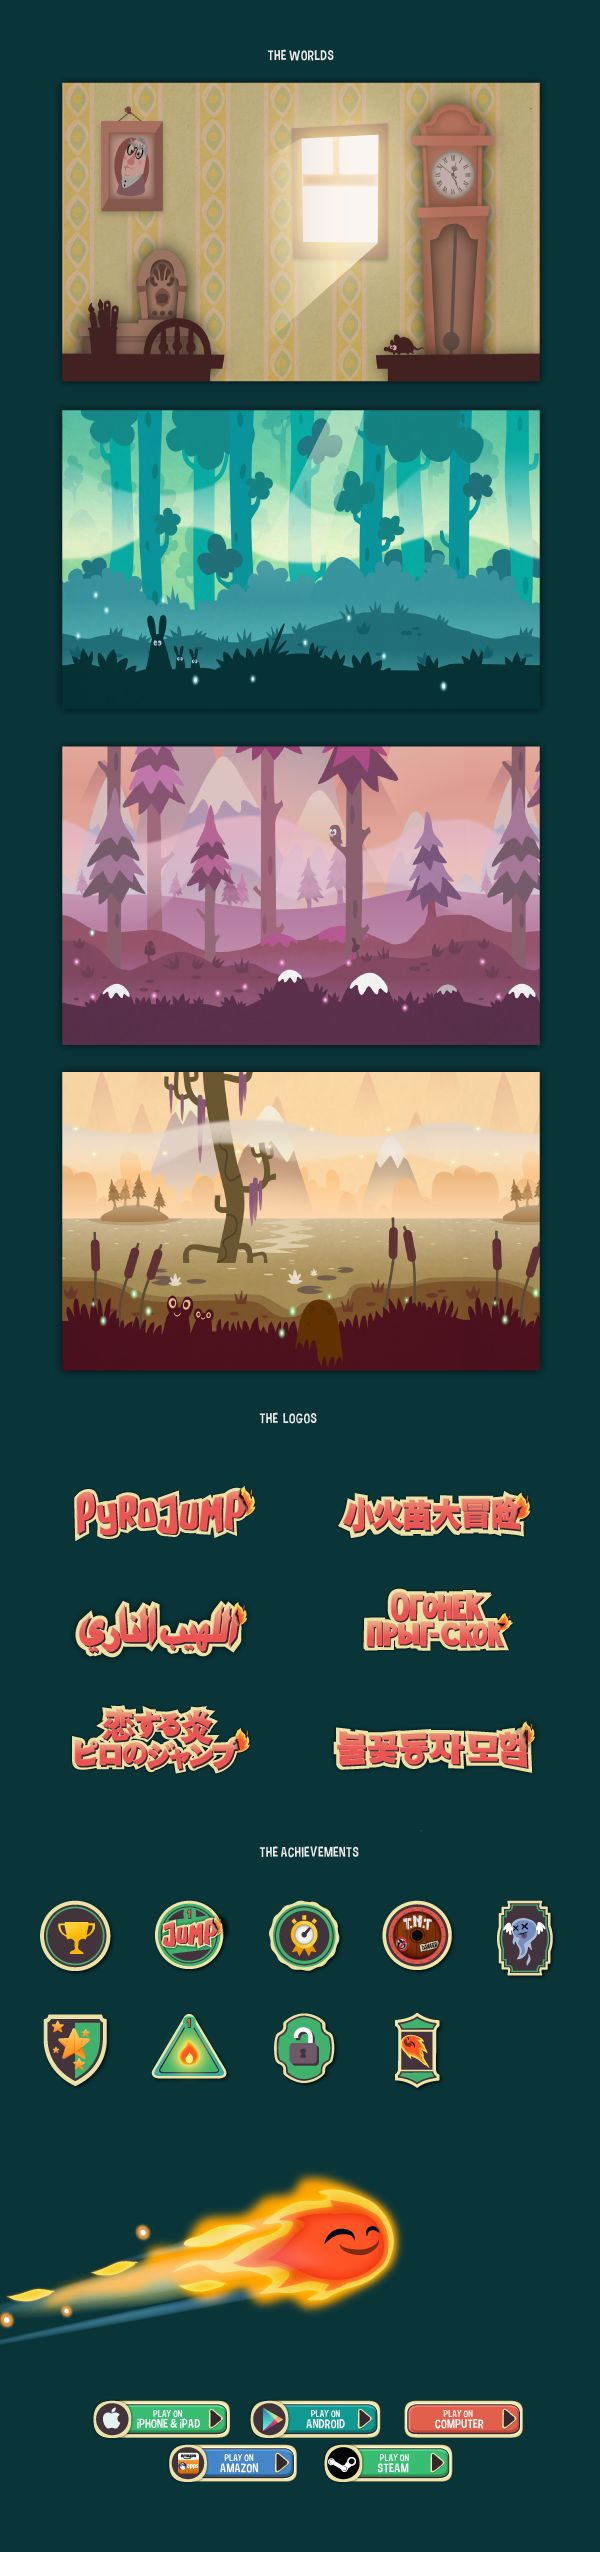 Pyro Jump - video game by Alexandre Imbert, via Behance